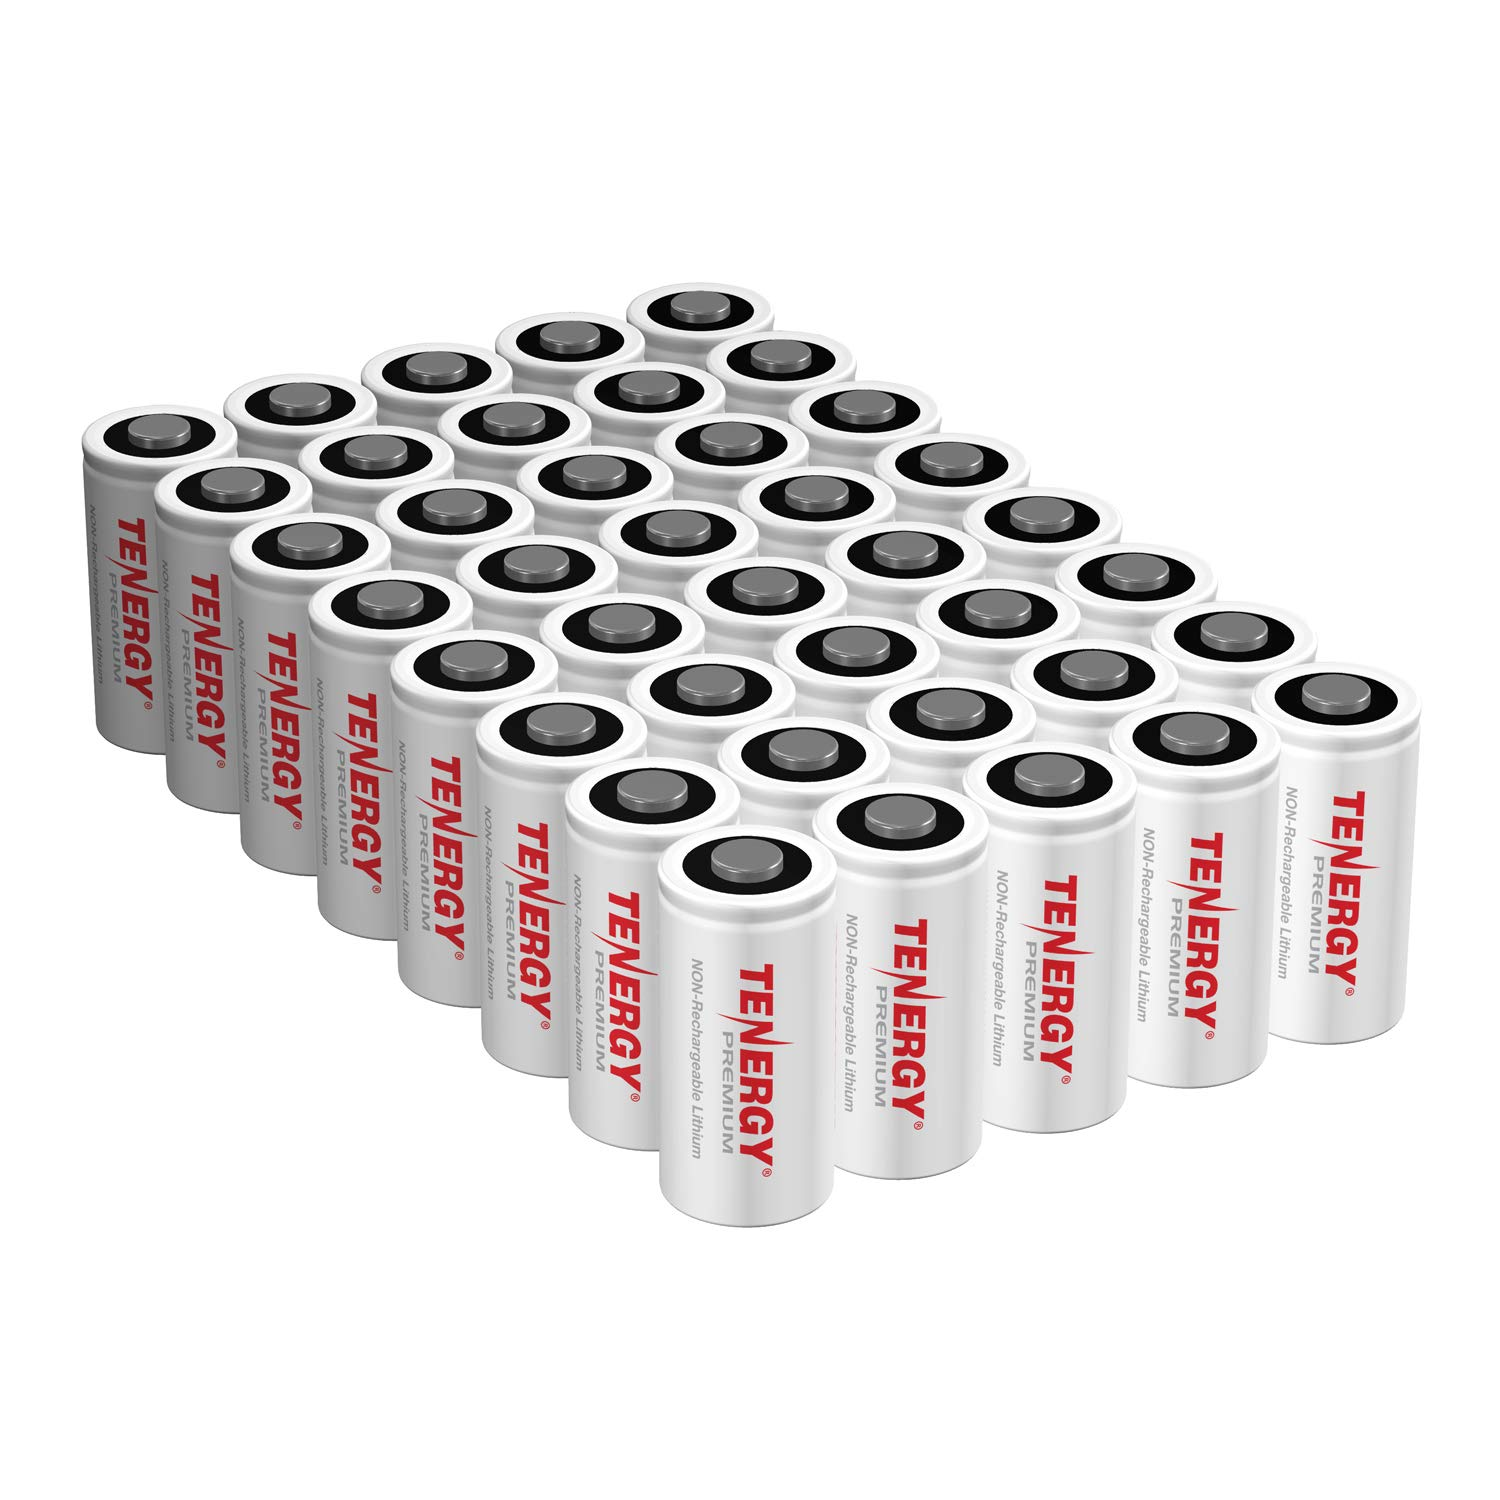 Tenergy Premium CR123A 3V Lithium Battery, [UL Certified] 1600mAh Photo Lithium Batteries, Security Cameras, Smart Sensors, Specialty Devices, 40 Pack (Non-Rechargeable), PTC Protected